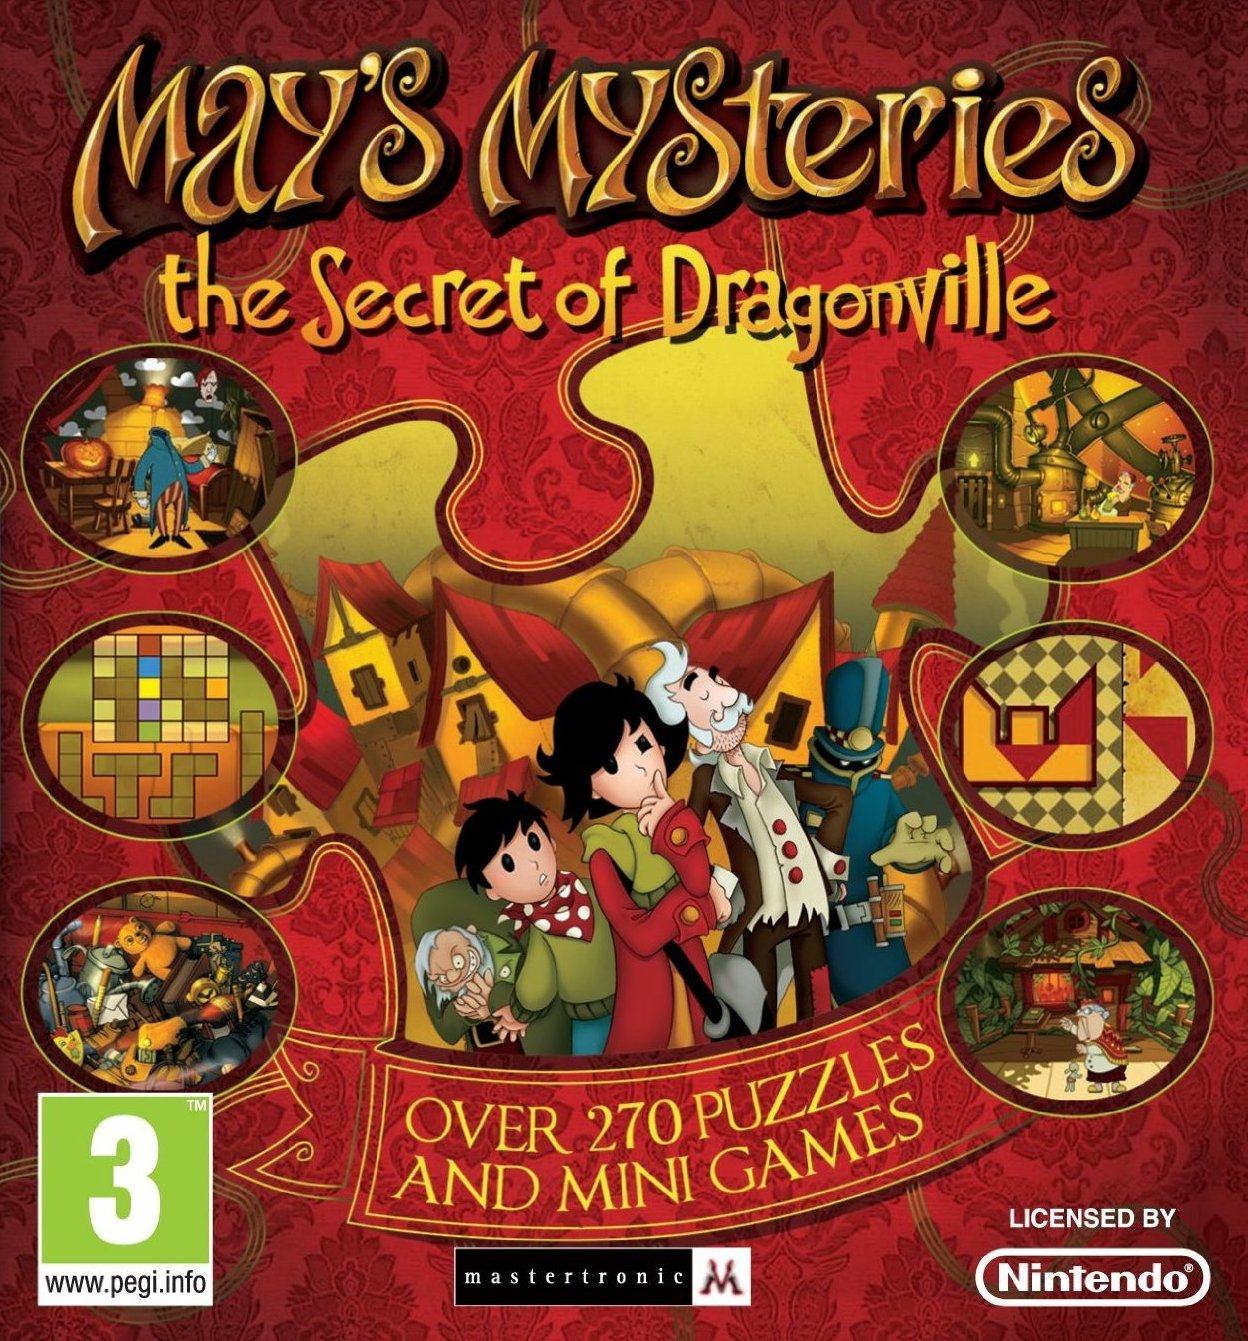 Mays Mysteries, The Secret Of Dragonville, Review, Mays Mysteries: The Secret Of Dragonville Review, Casual, Indie, Puzzle, Hidden Object, PC, DS, NDS, Game, Review, Reviews,